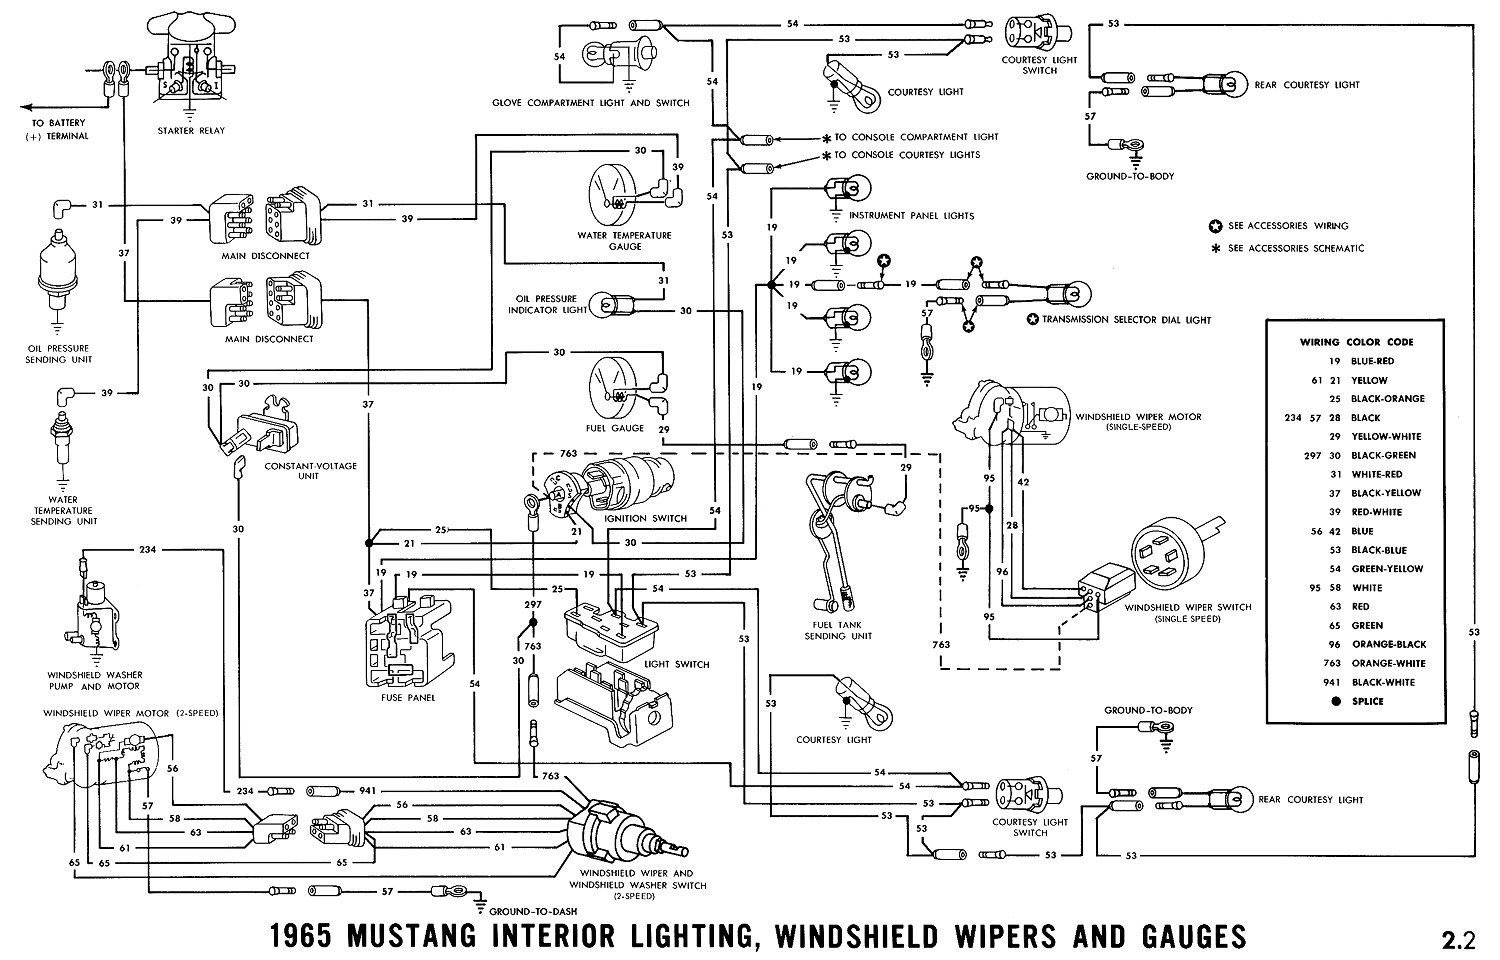 1965g 1965 mustang wiring diagrams average joe restoration 1965 ford mustang wiring diagram at crackthecode.co